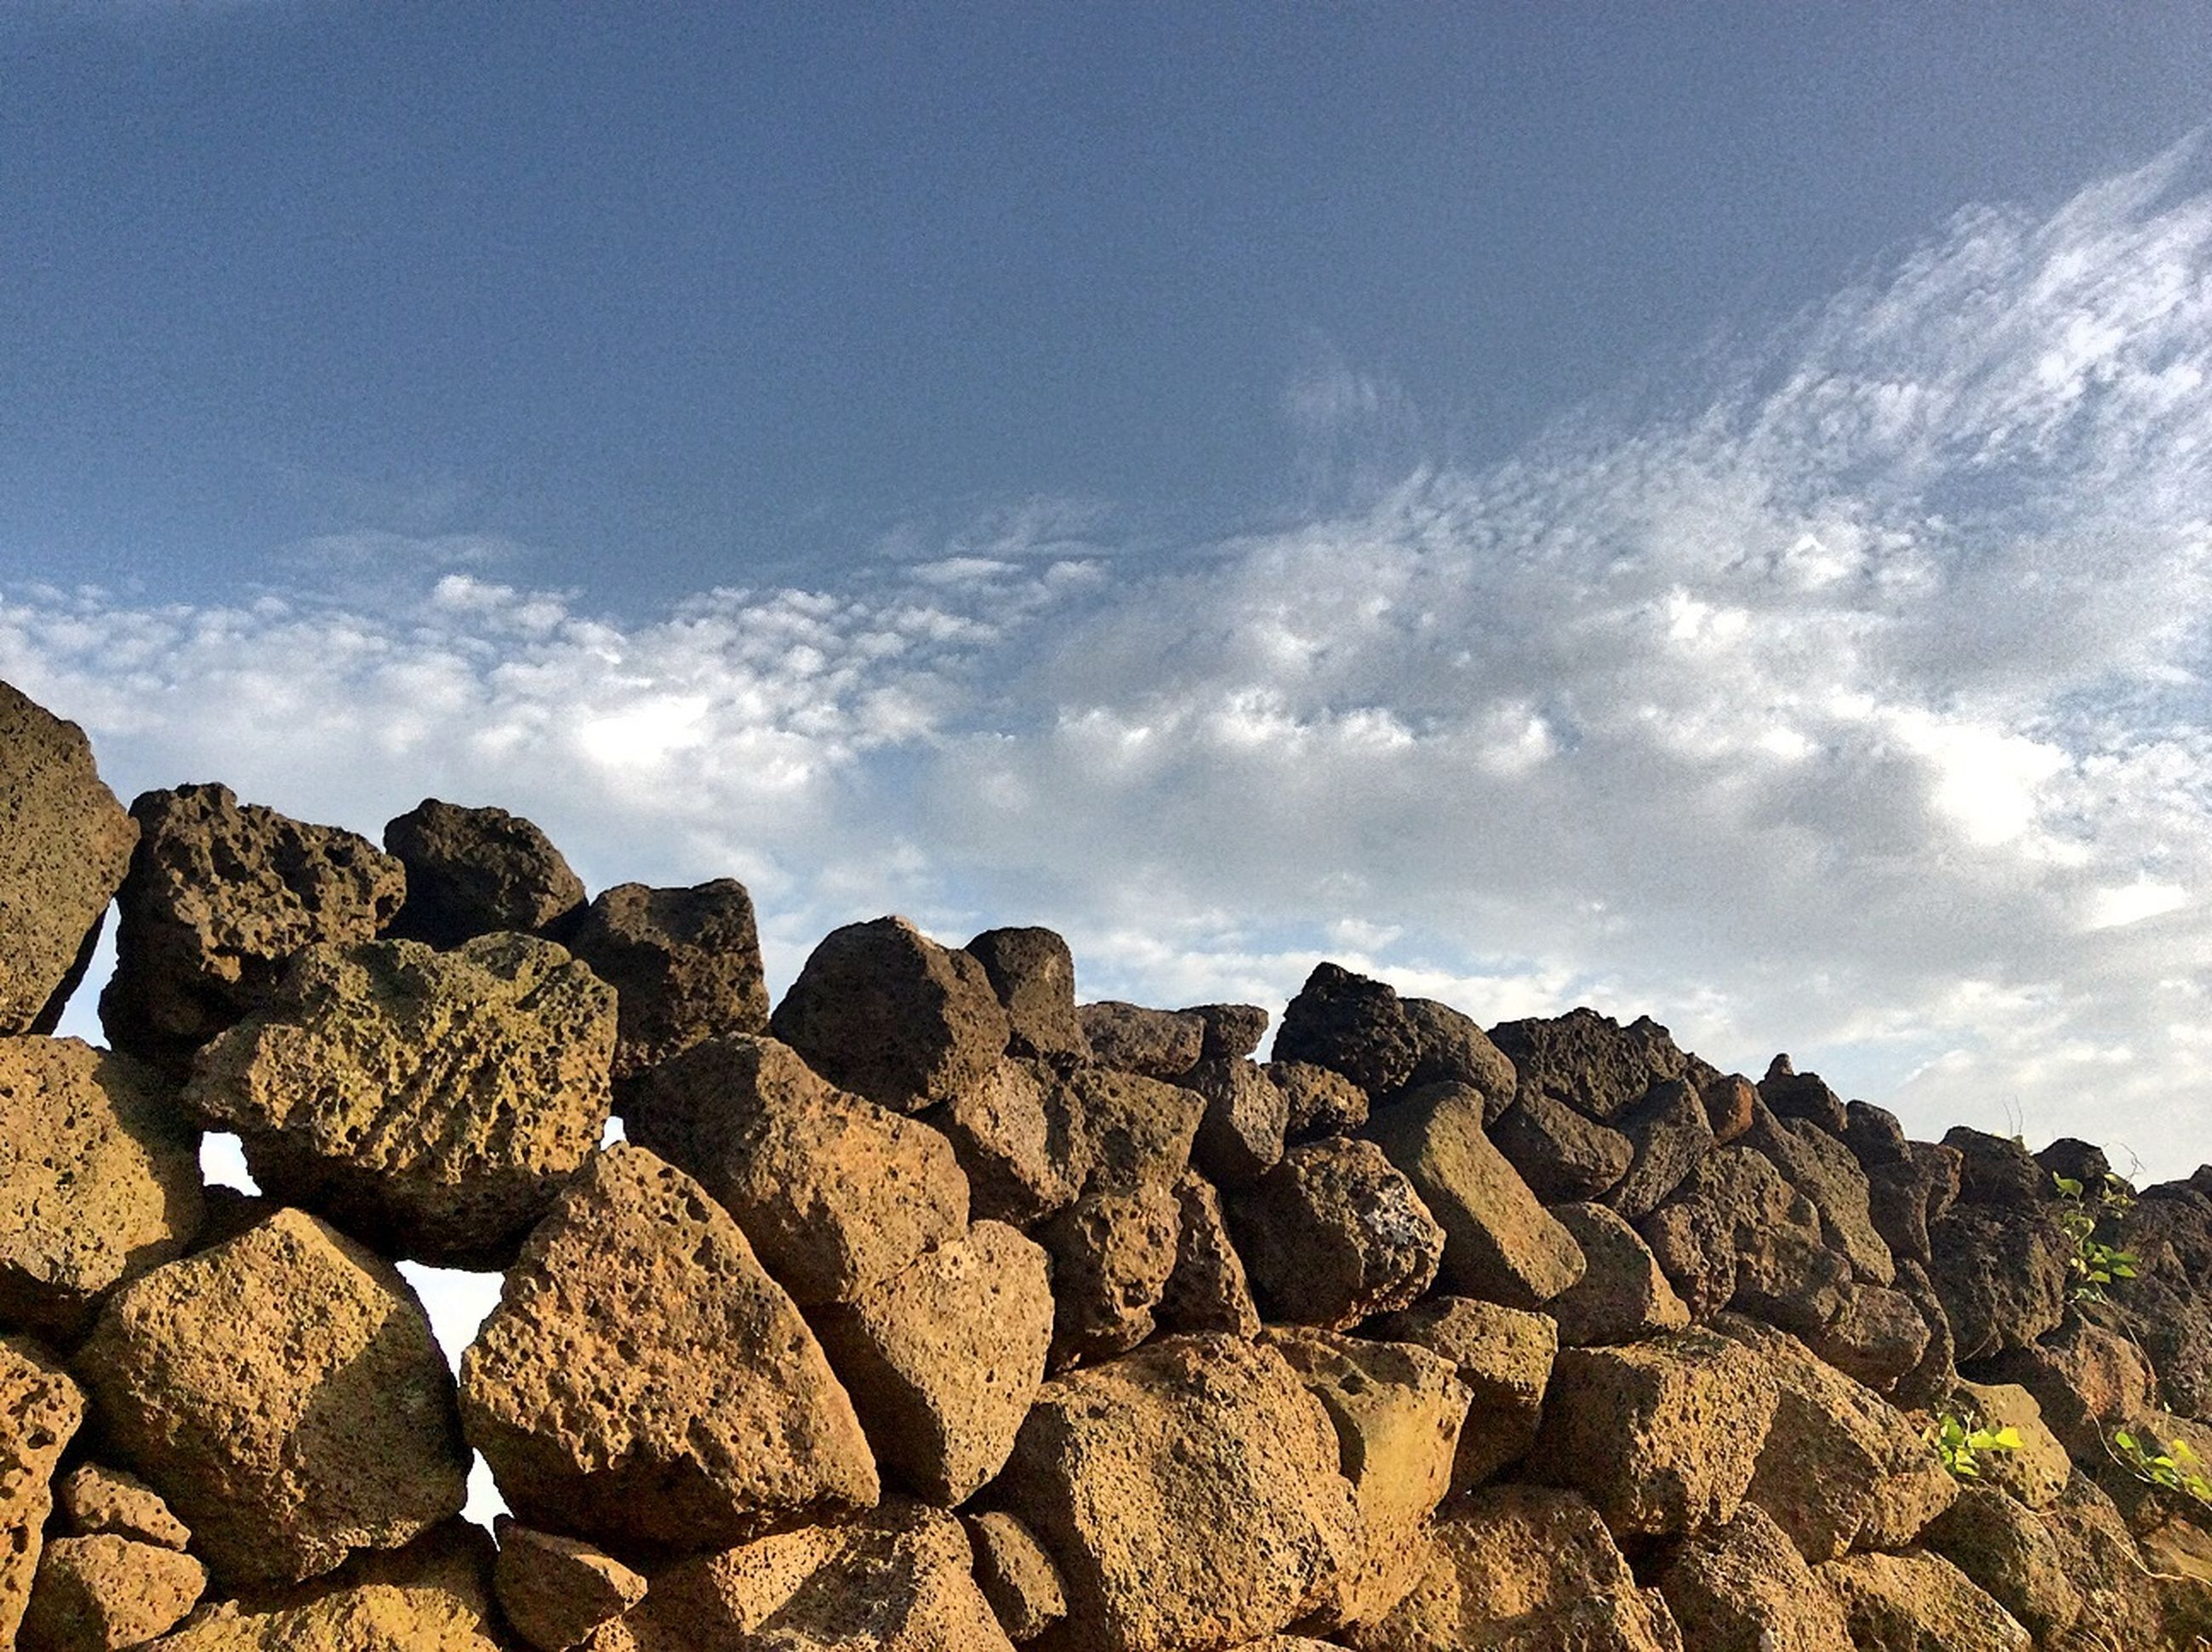 rock - object, sky, water, cloud - sky, tranquility, scenics, rock formation, tranquil scene, nature, beauty in nature, cloud, rock, stone - object, sea, day, outdoors, cloudy, idyllic, stone, reflection